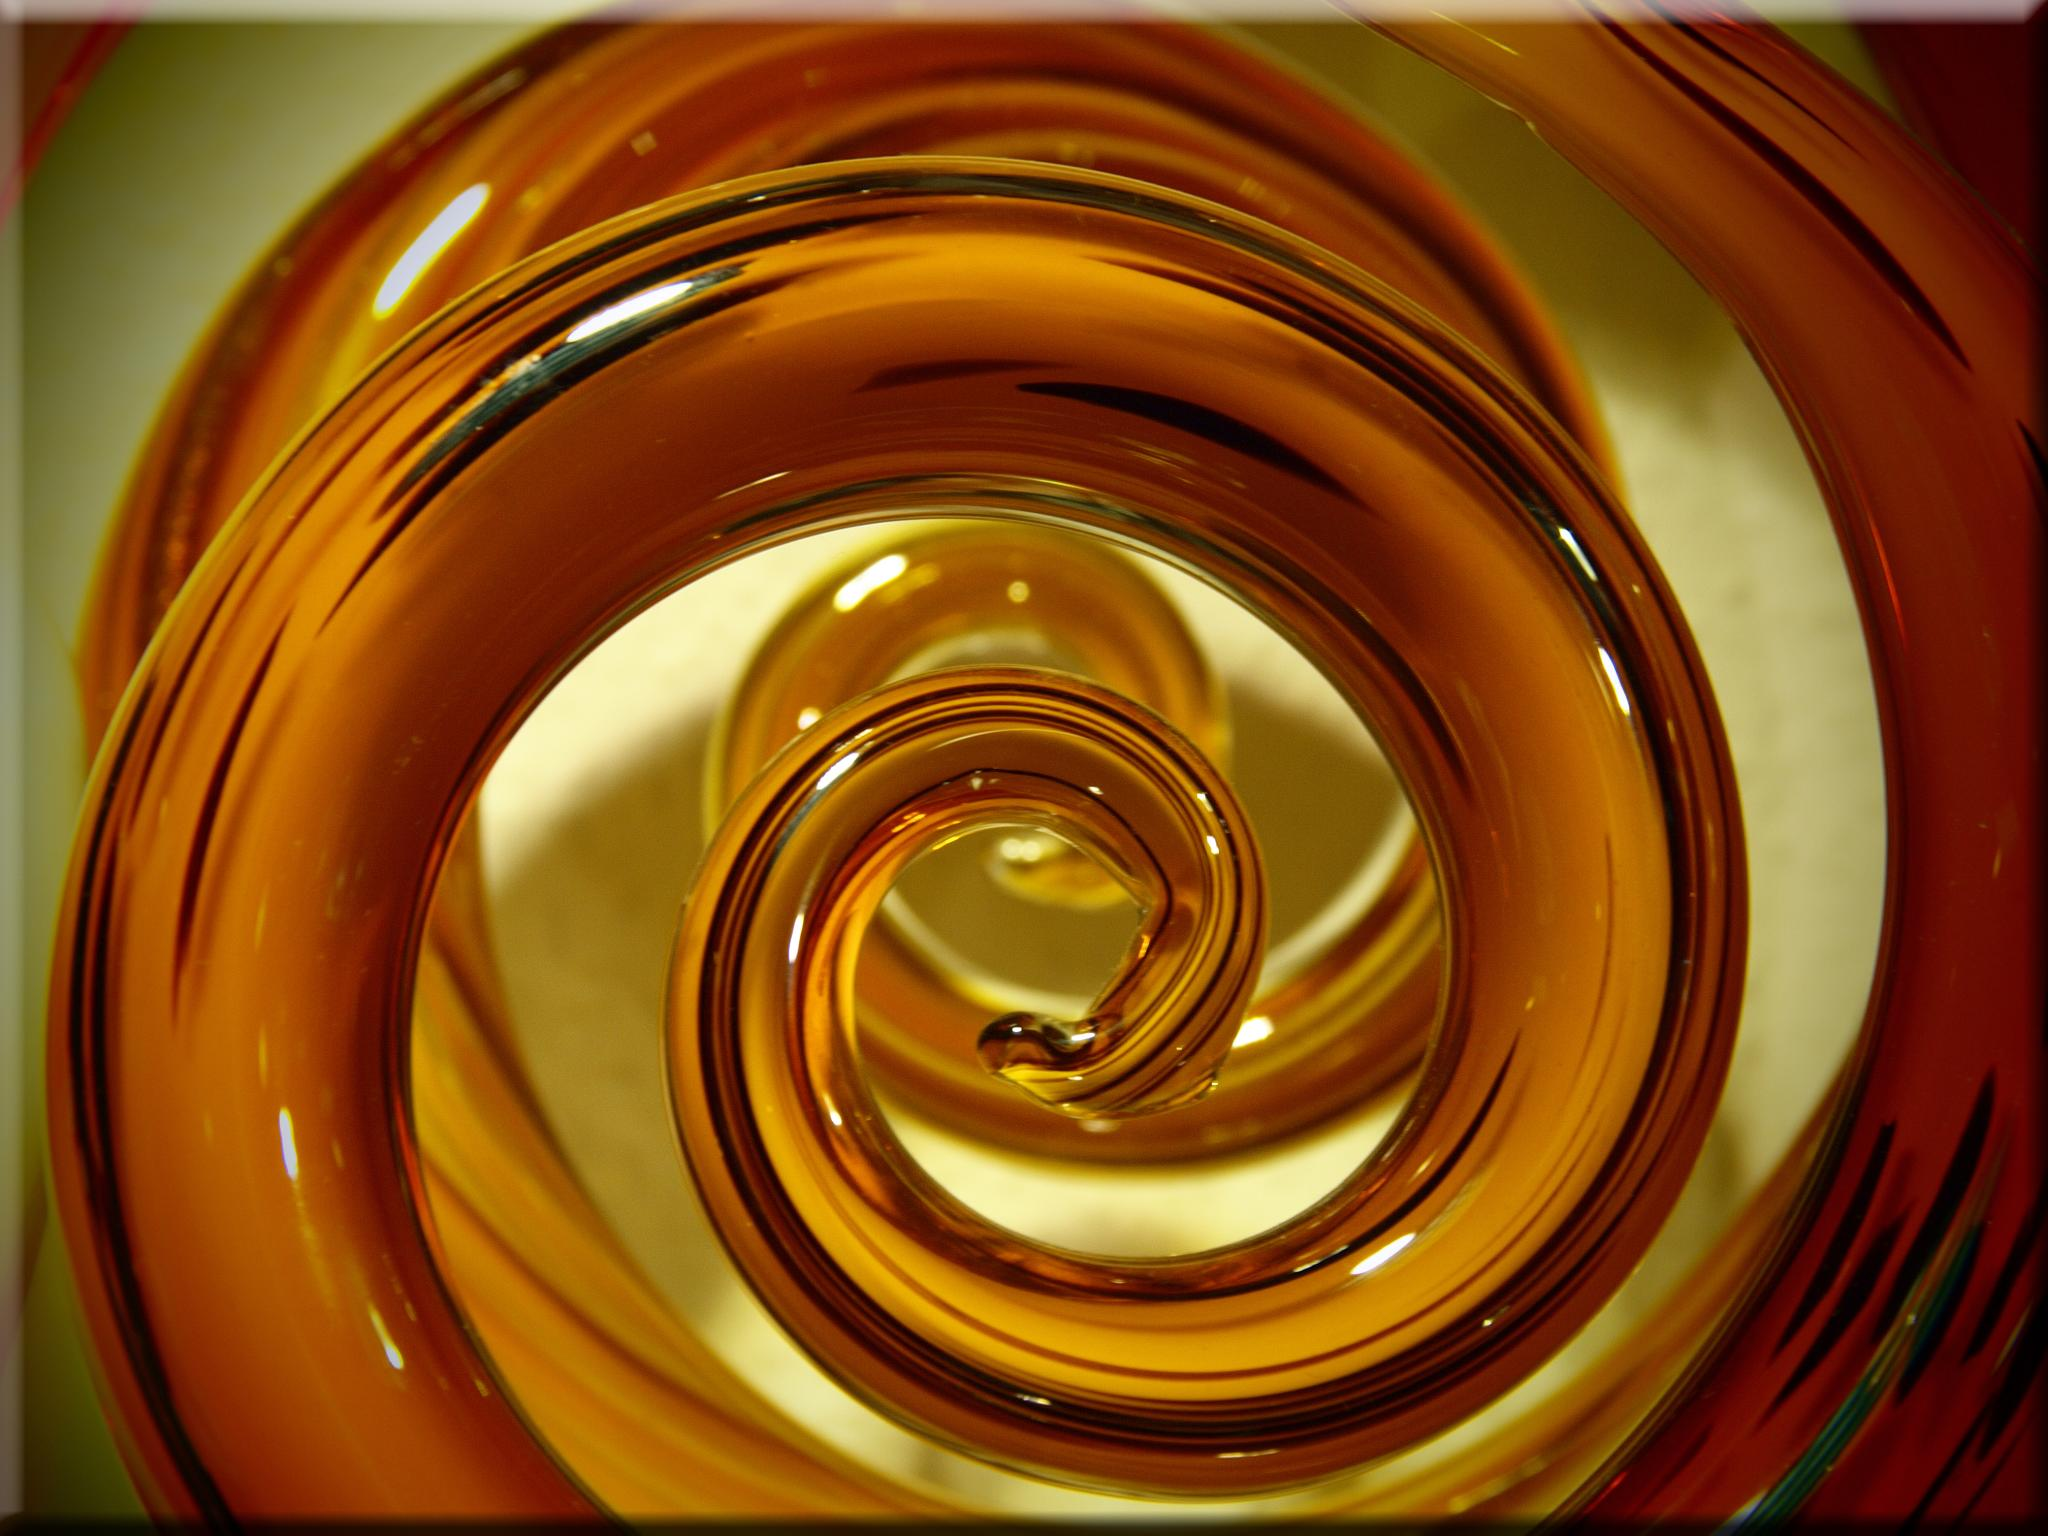 Glas Kunst Wallpaper Spiral Yellow Glass Orange Circle Art Glas